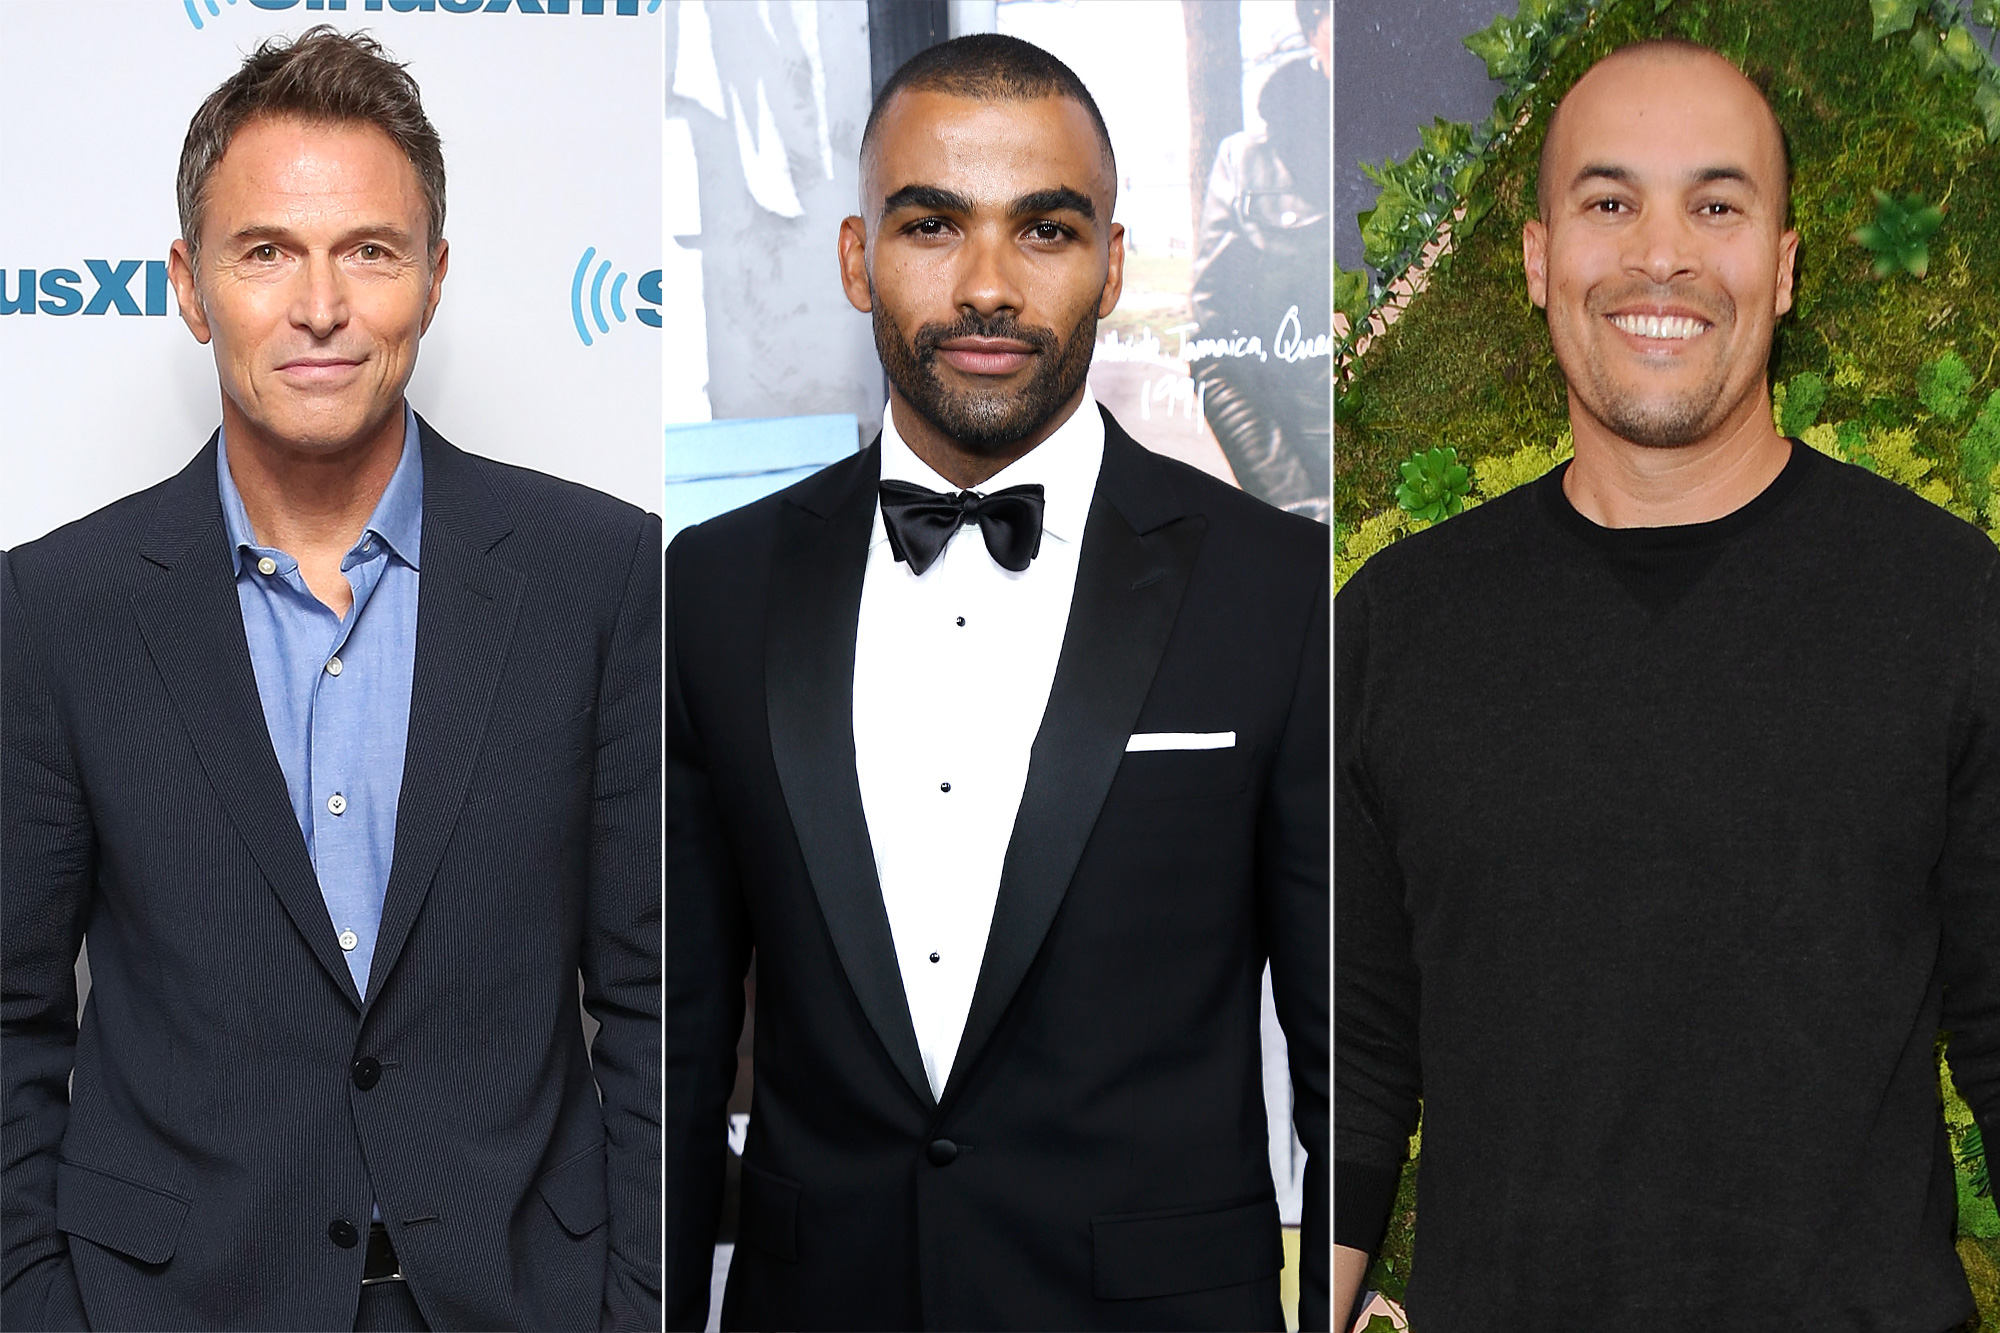 Tim Daly, Toby Sandeman, Coby Bell